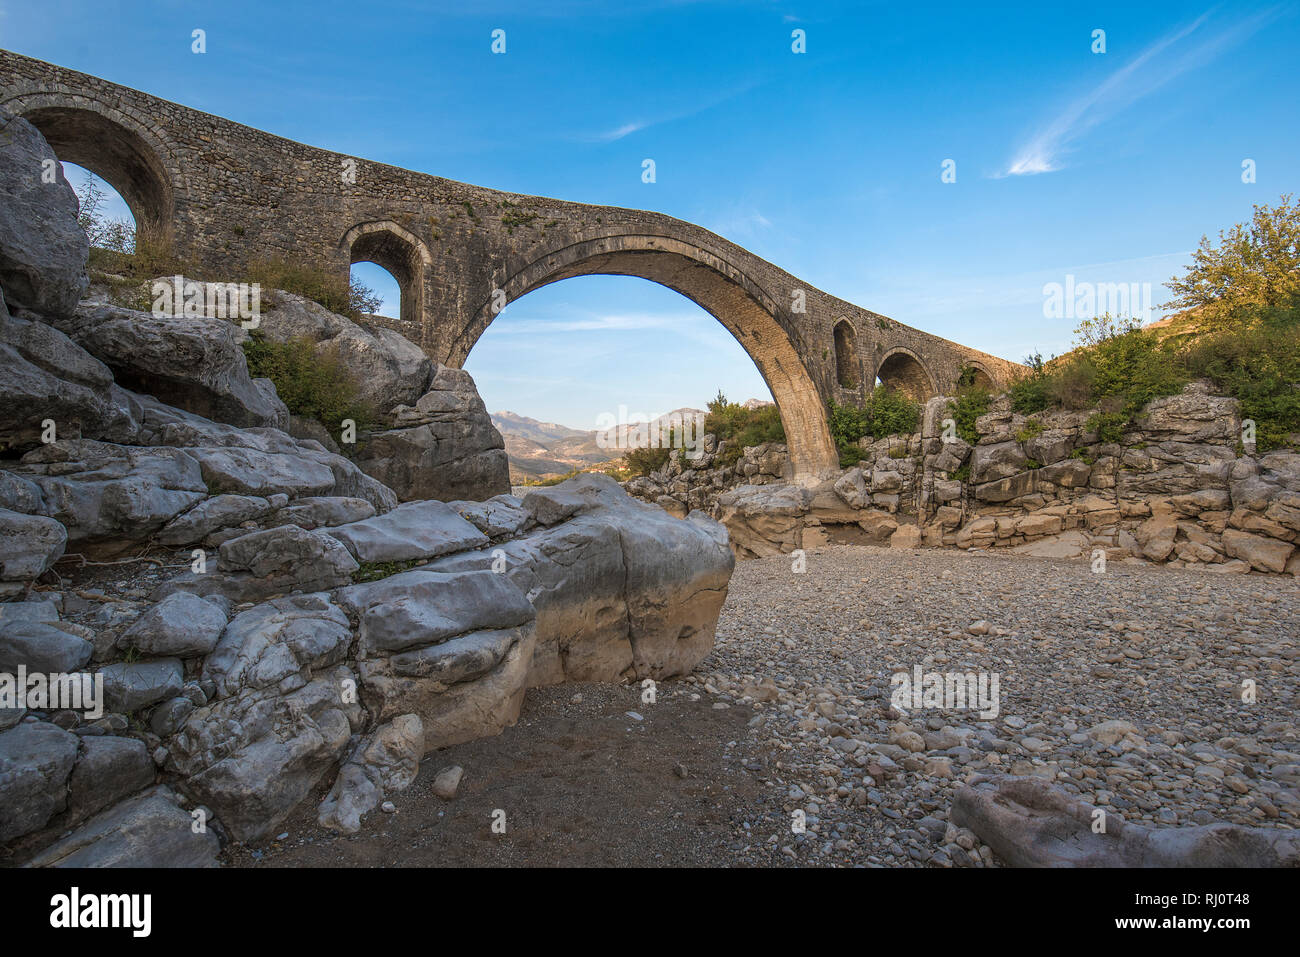 The Mesi bridge (Ura e Mesit) in Mes, Albania, near Shkoder . An old stone Ottoman bridge - the largest in the country. Dry river and mountains - Stock Image